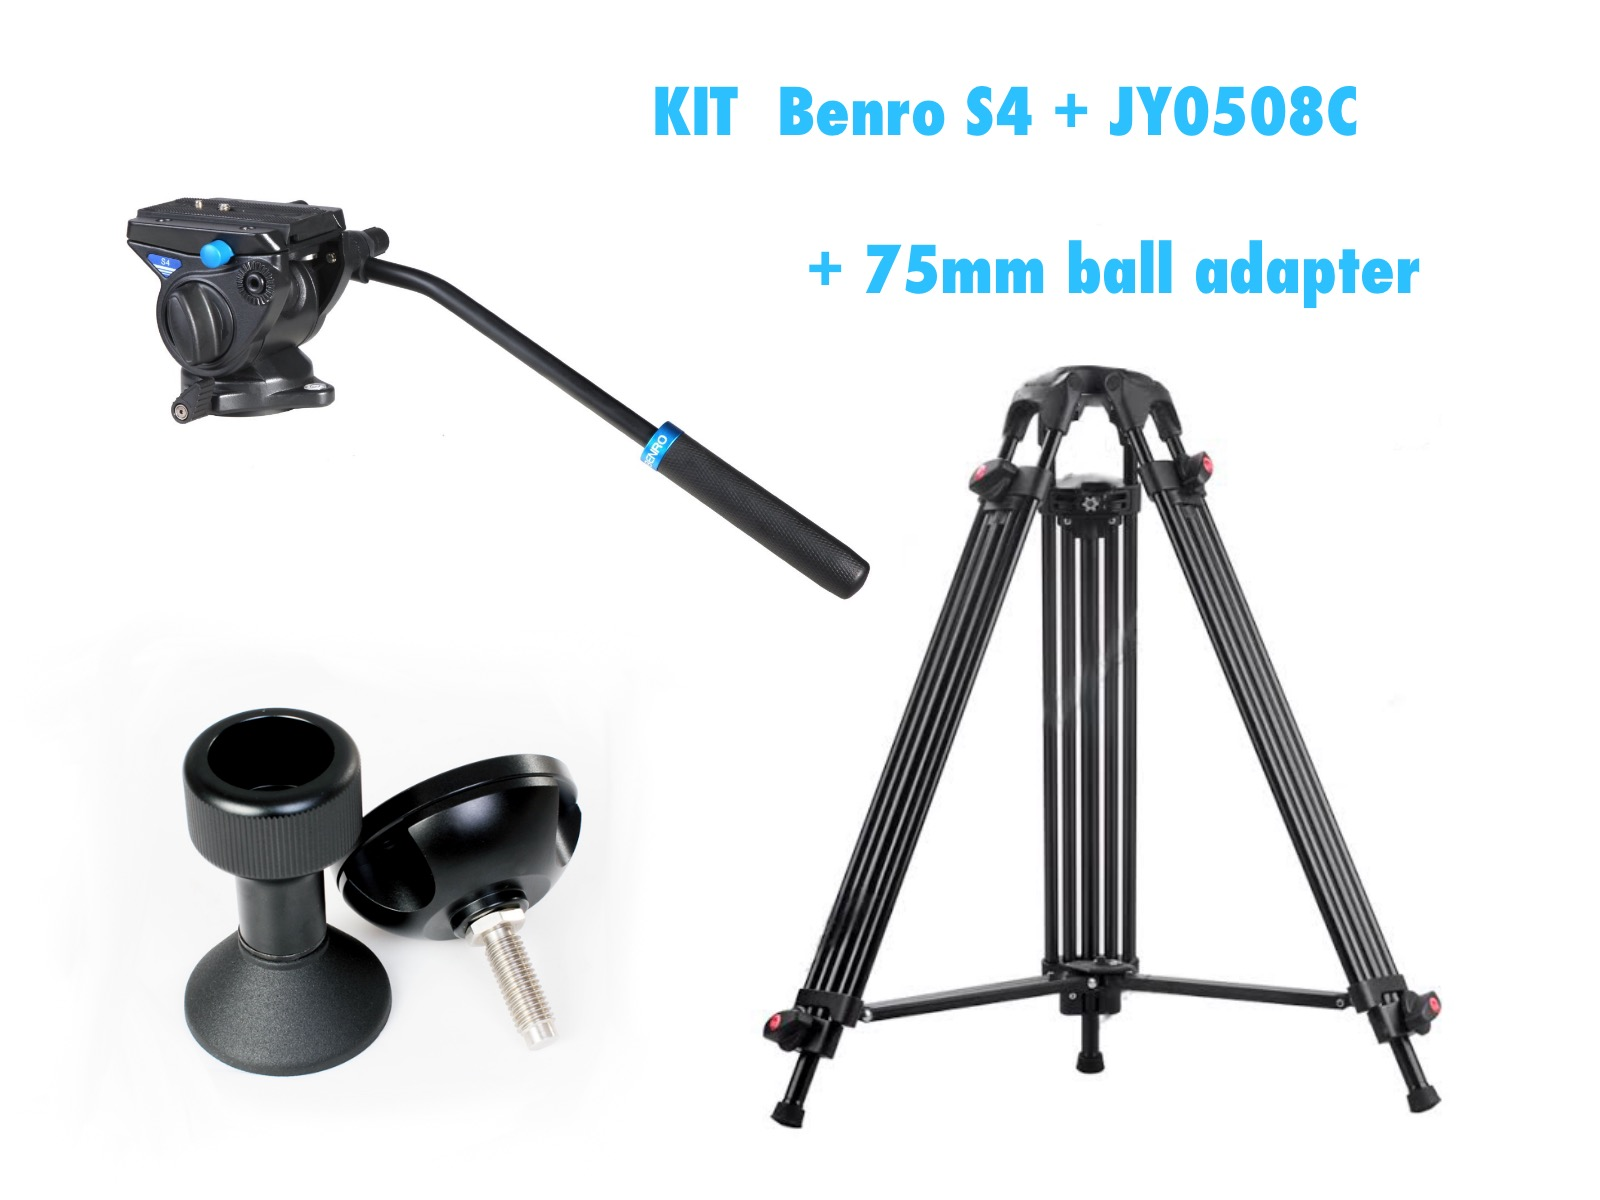 KIT BENRO S4 + BALL ADAPTER+ JY0508C CARBON FIBER TRIPOD  192 CM